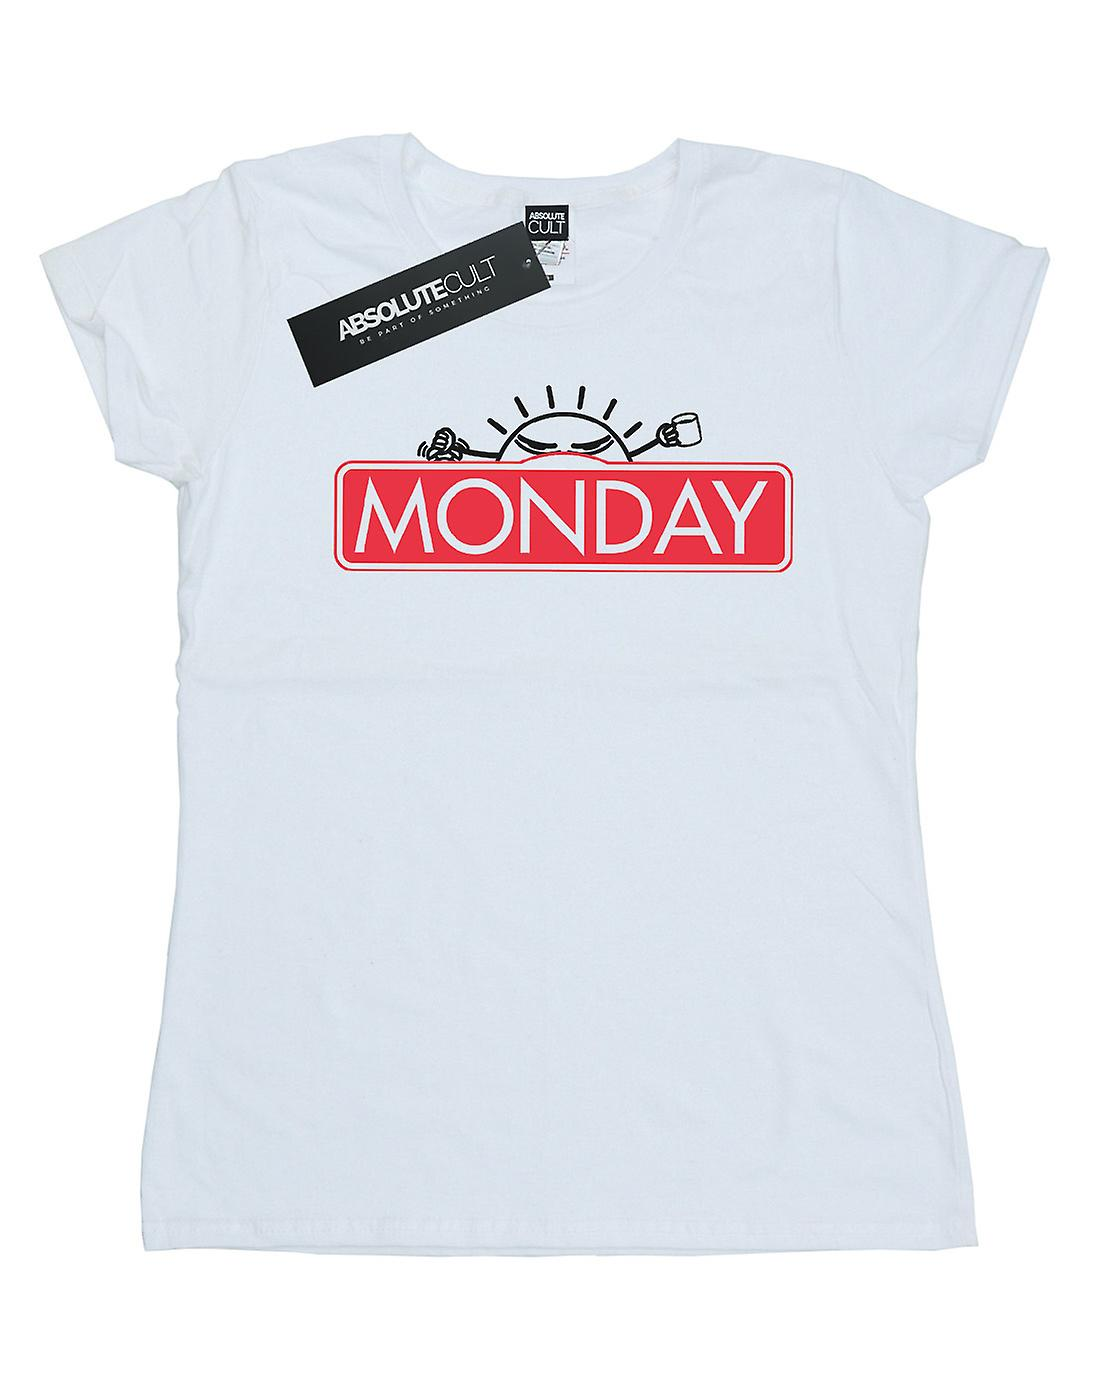 Ntesign Women's Monday Game T-Shirt